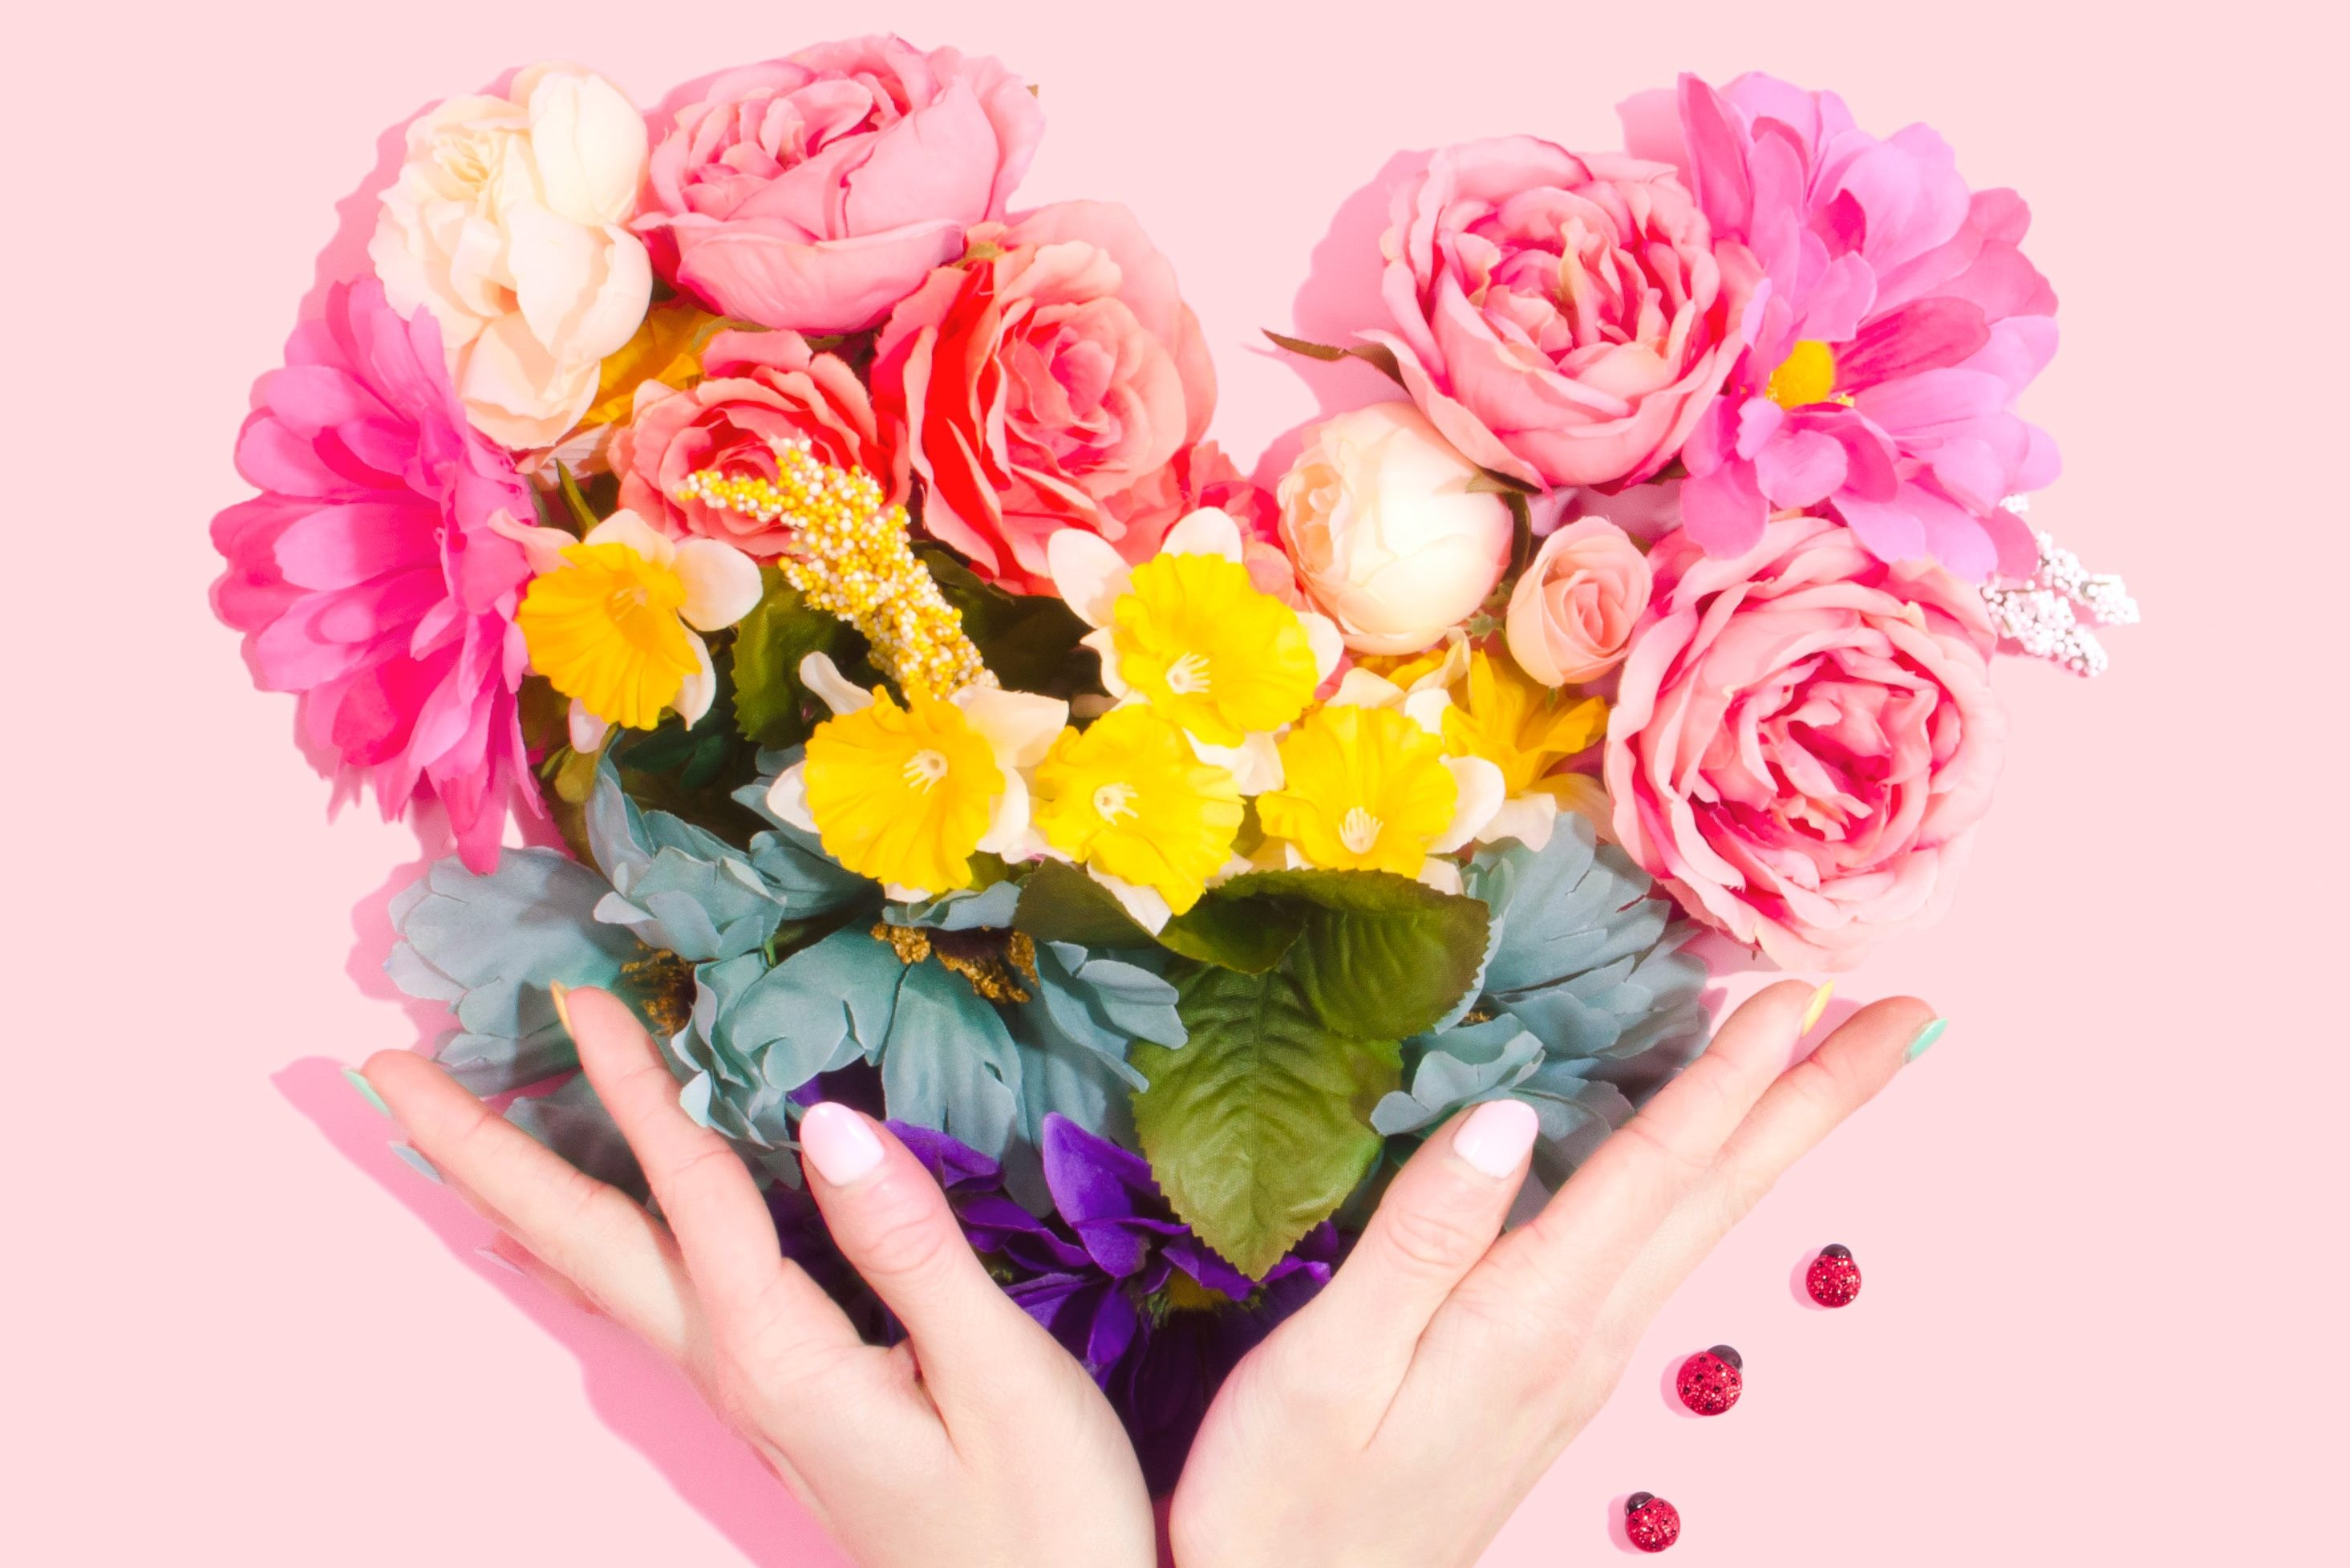 ven with COVID-19 restrictions, there are still creative ways to celebrate the holiday of love with your valentine.